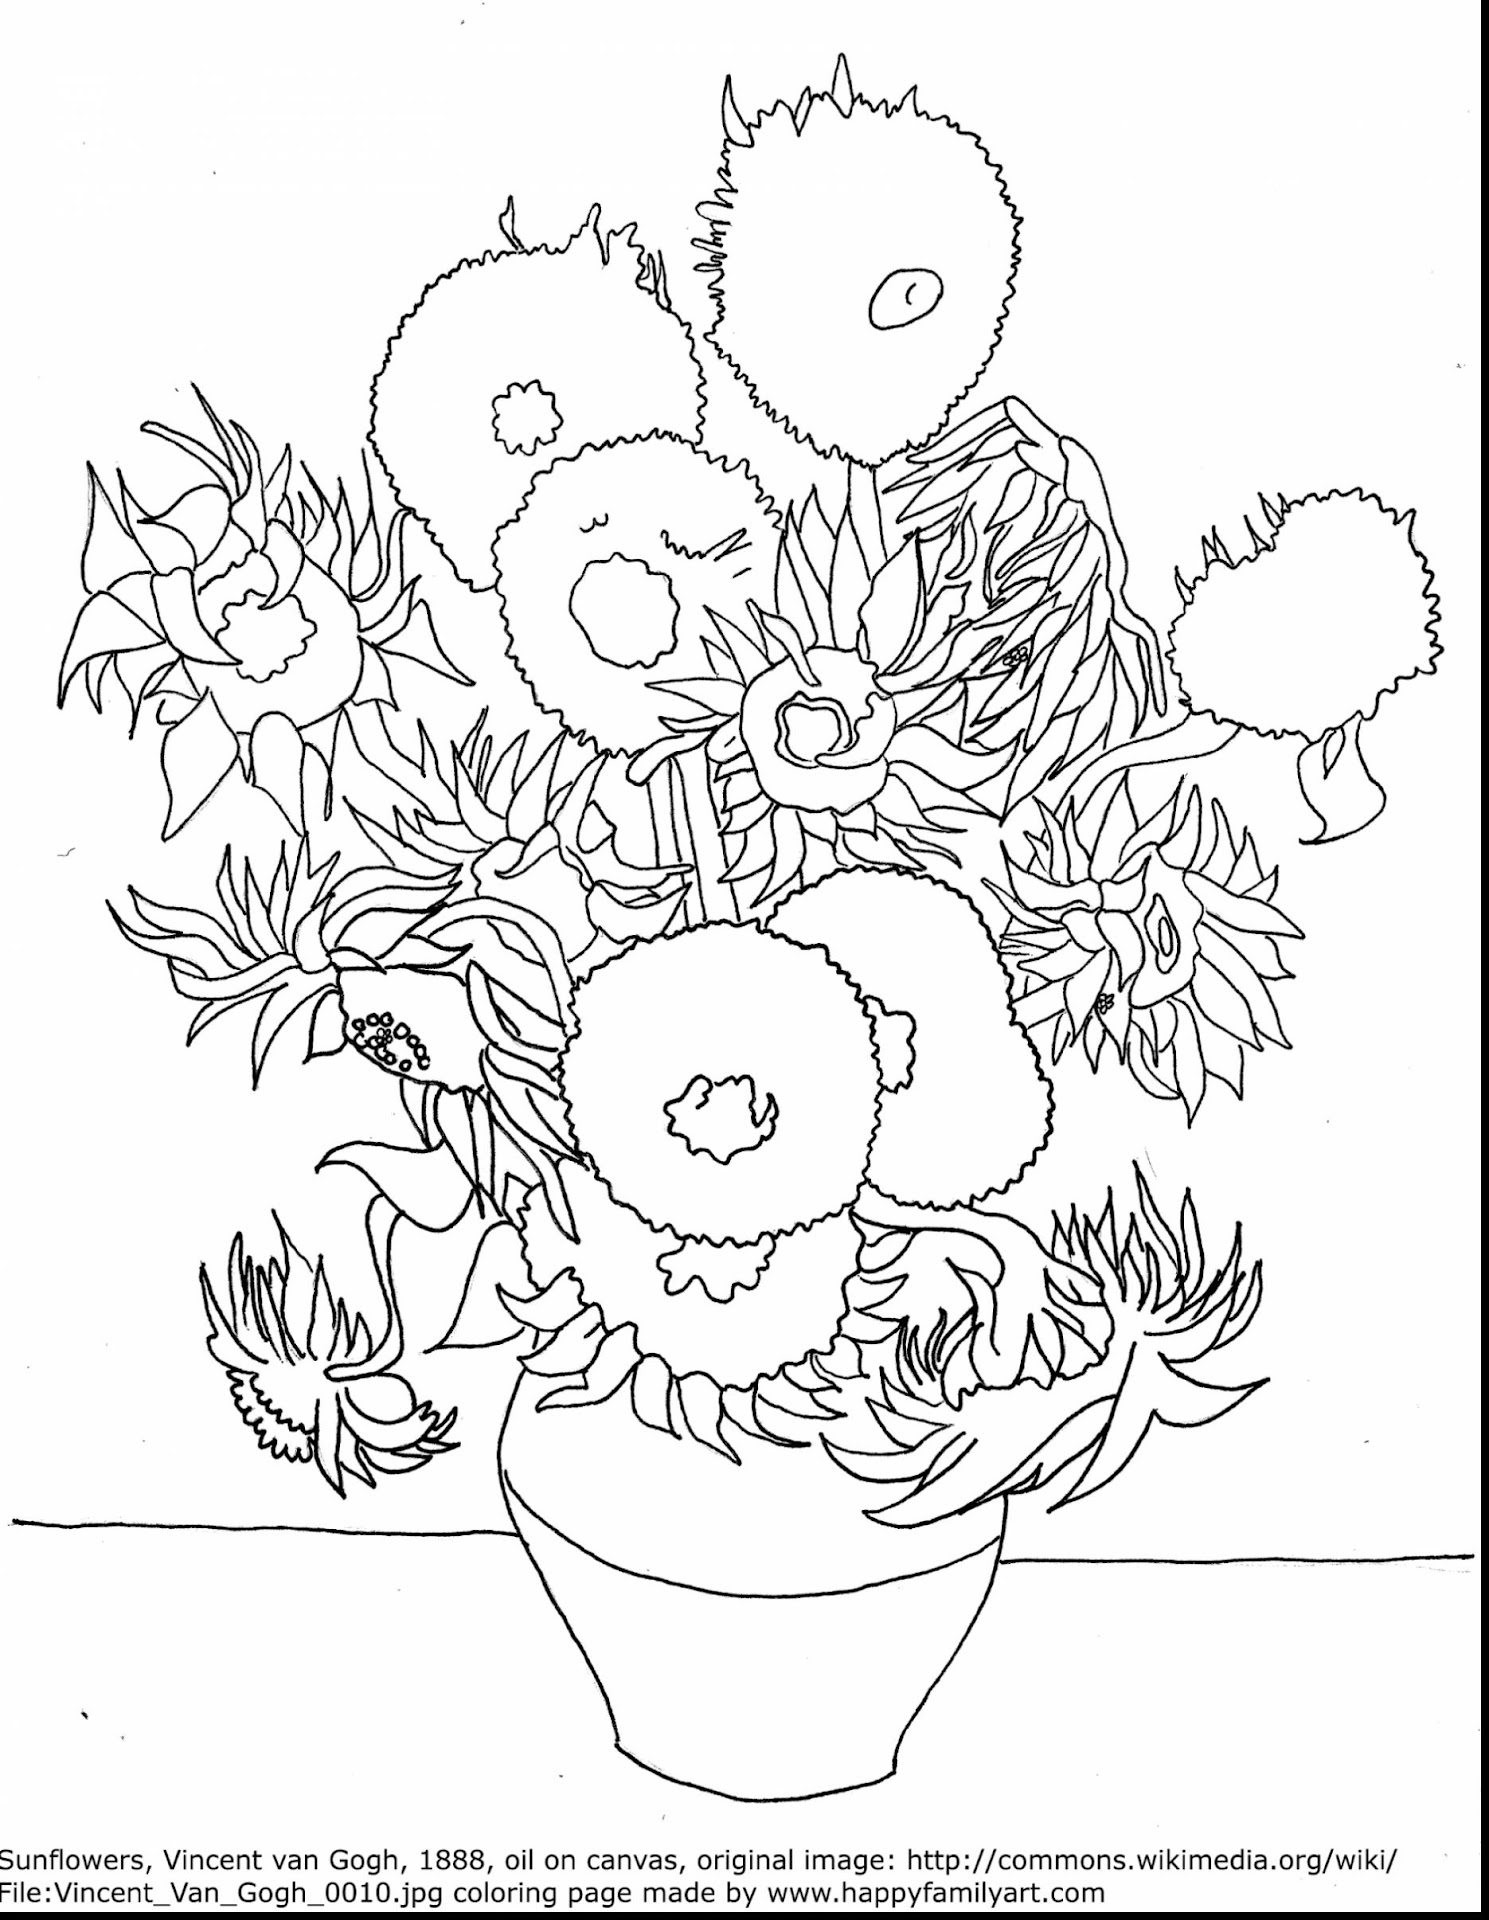 Best hd van gogh sunflowers coloring page library for Coloring pages of sunflowers